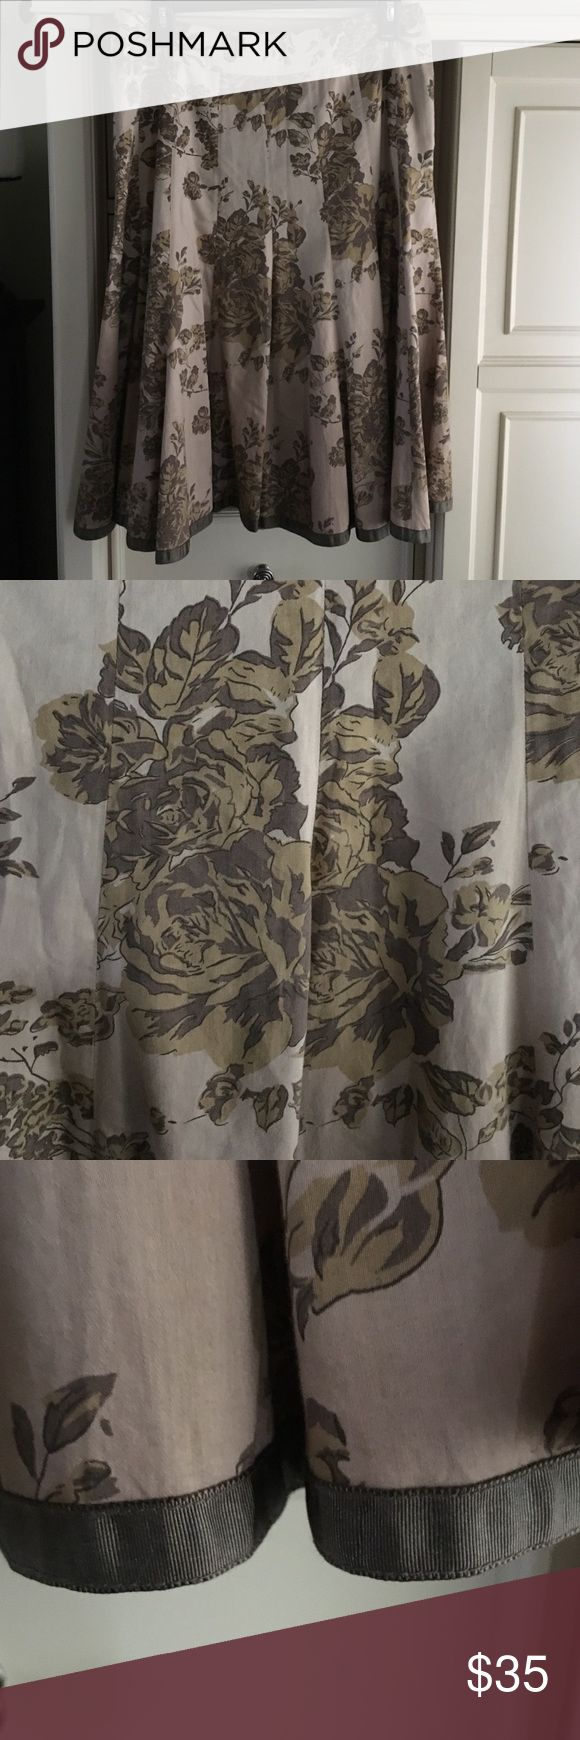 Anthropologie cotton printed skirt w/sepia roses Anthropologie A line full skirt in 100% cotton printed vintage taupe roses on antique beige ground. To hem is trimmed with a grosgrain ribbon in a taupe color. Size 4 however fits a 6. Anthropologie Skirts A-Line or Full